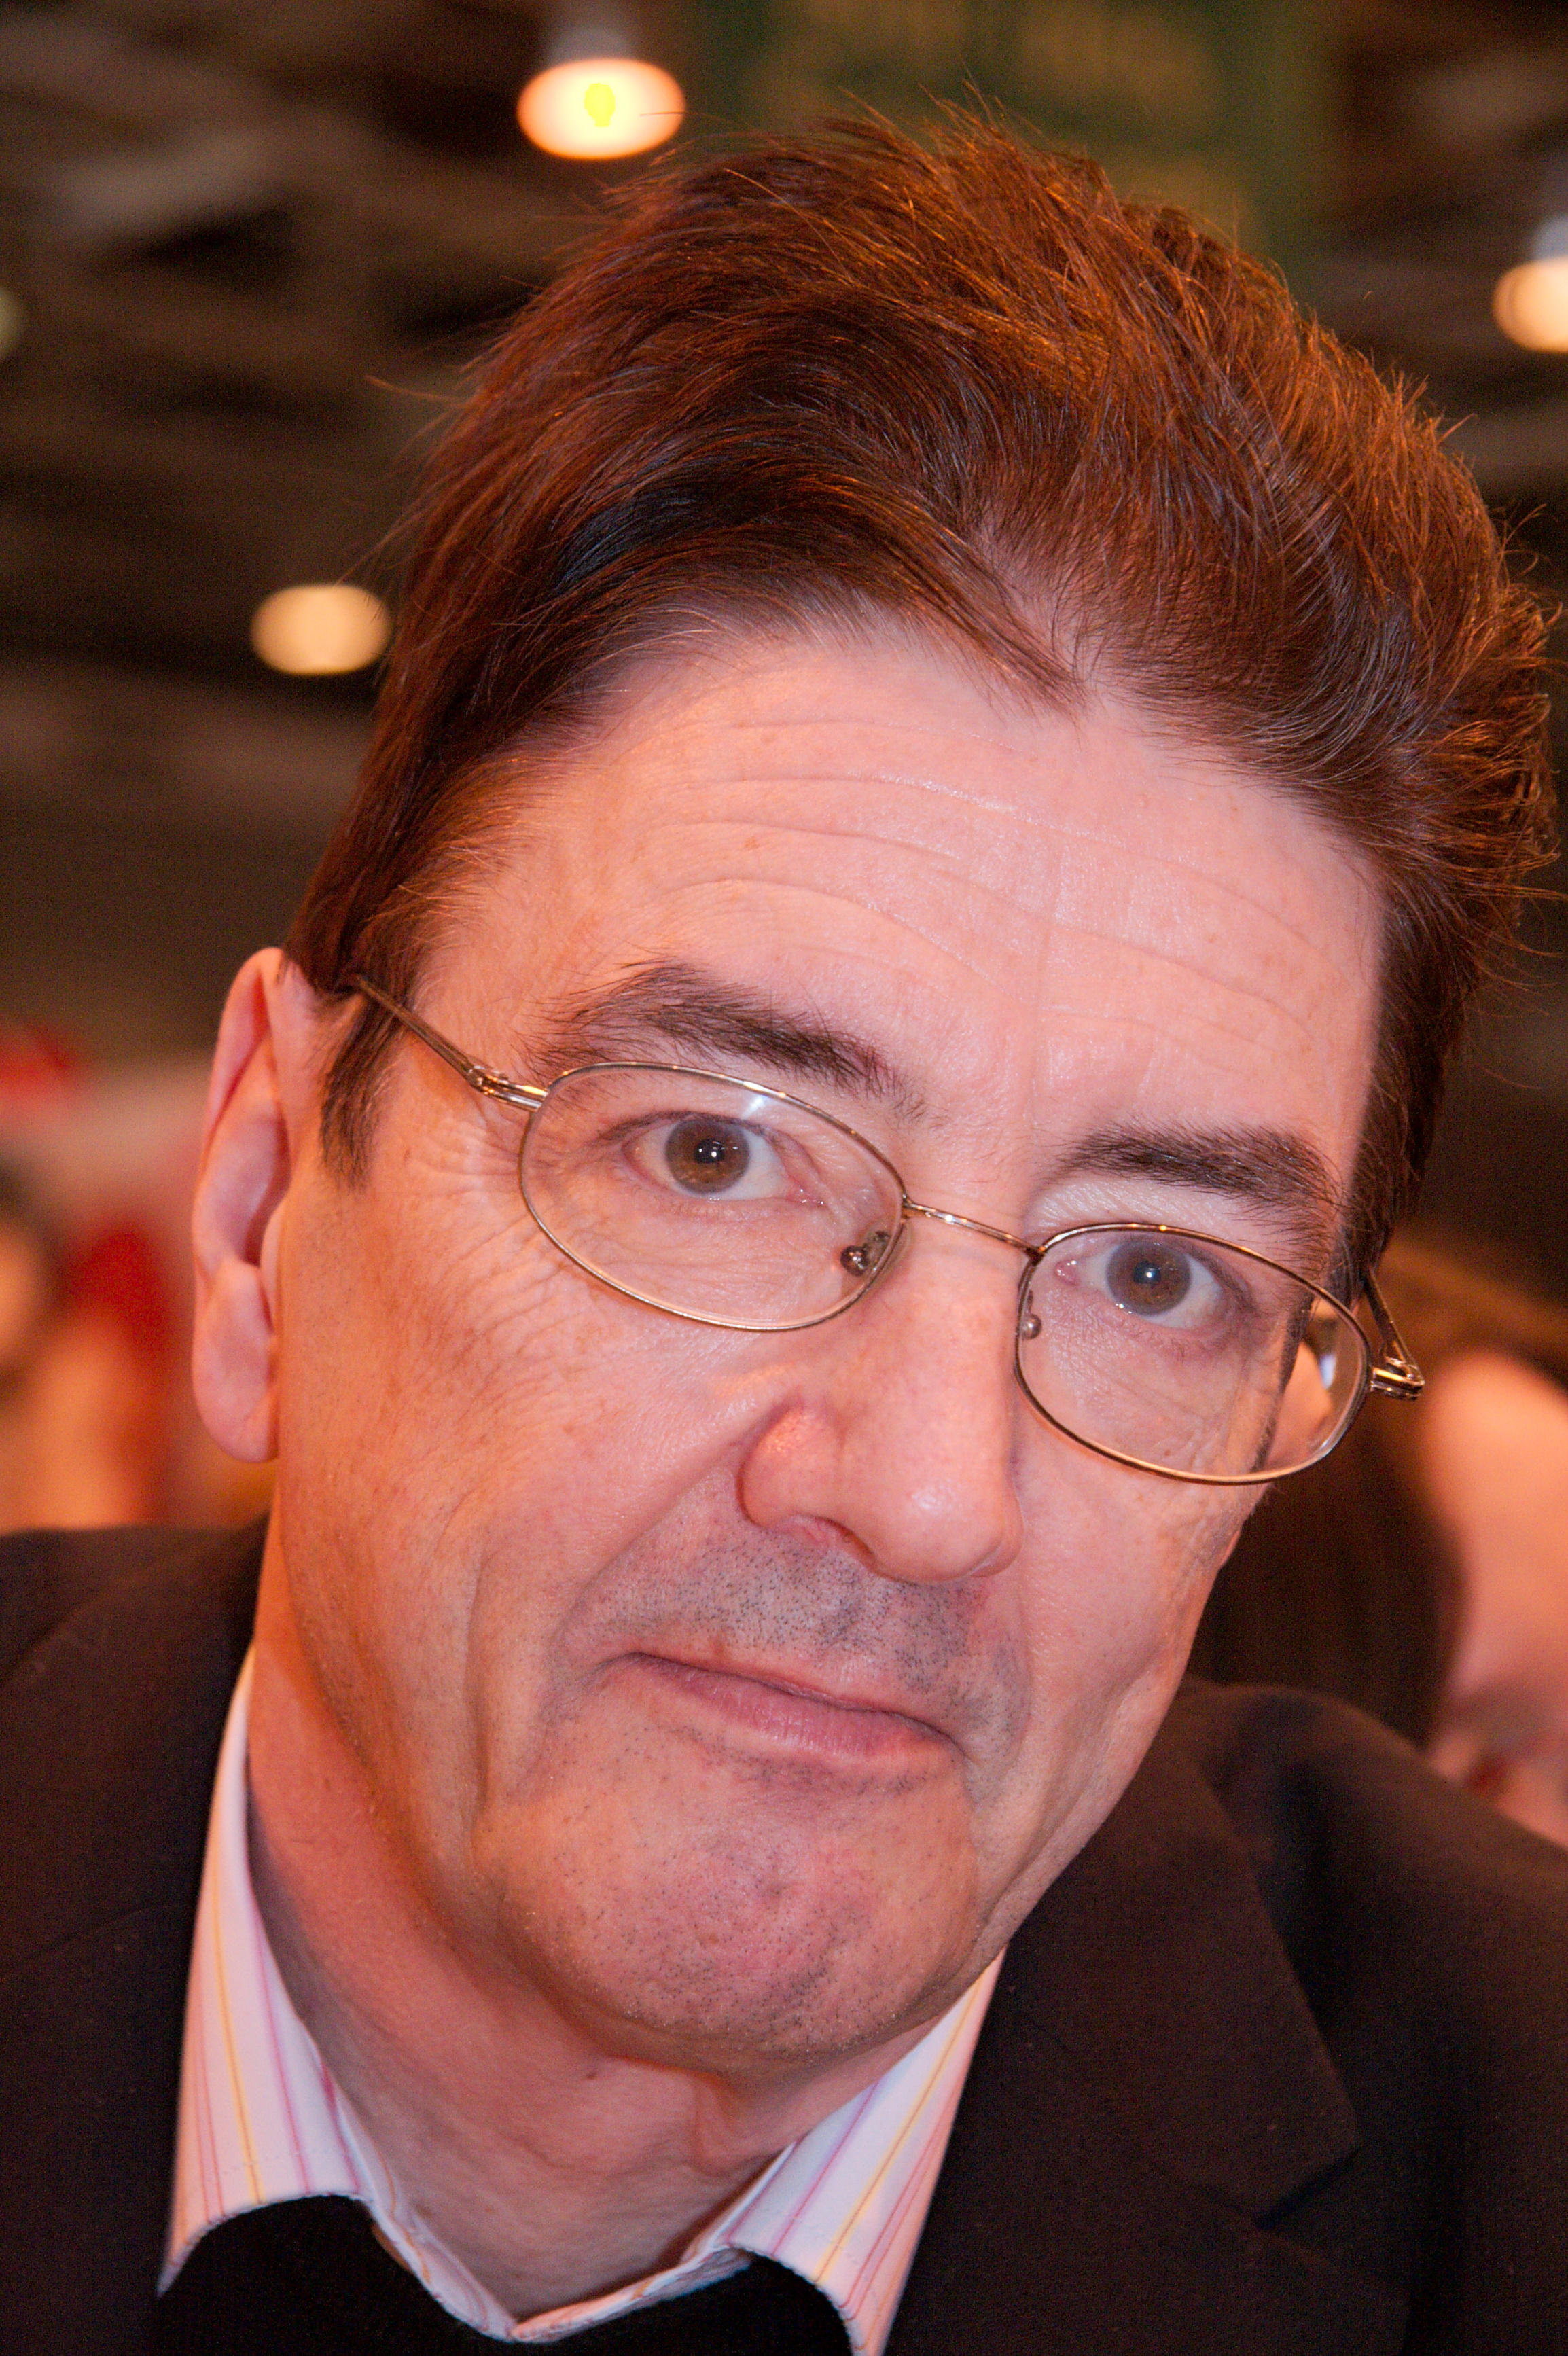 Graham Masterton at Salon du livre 2008 (Paris, France)